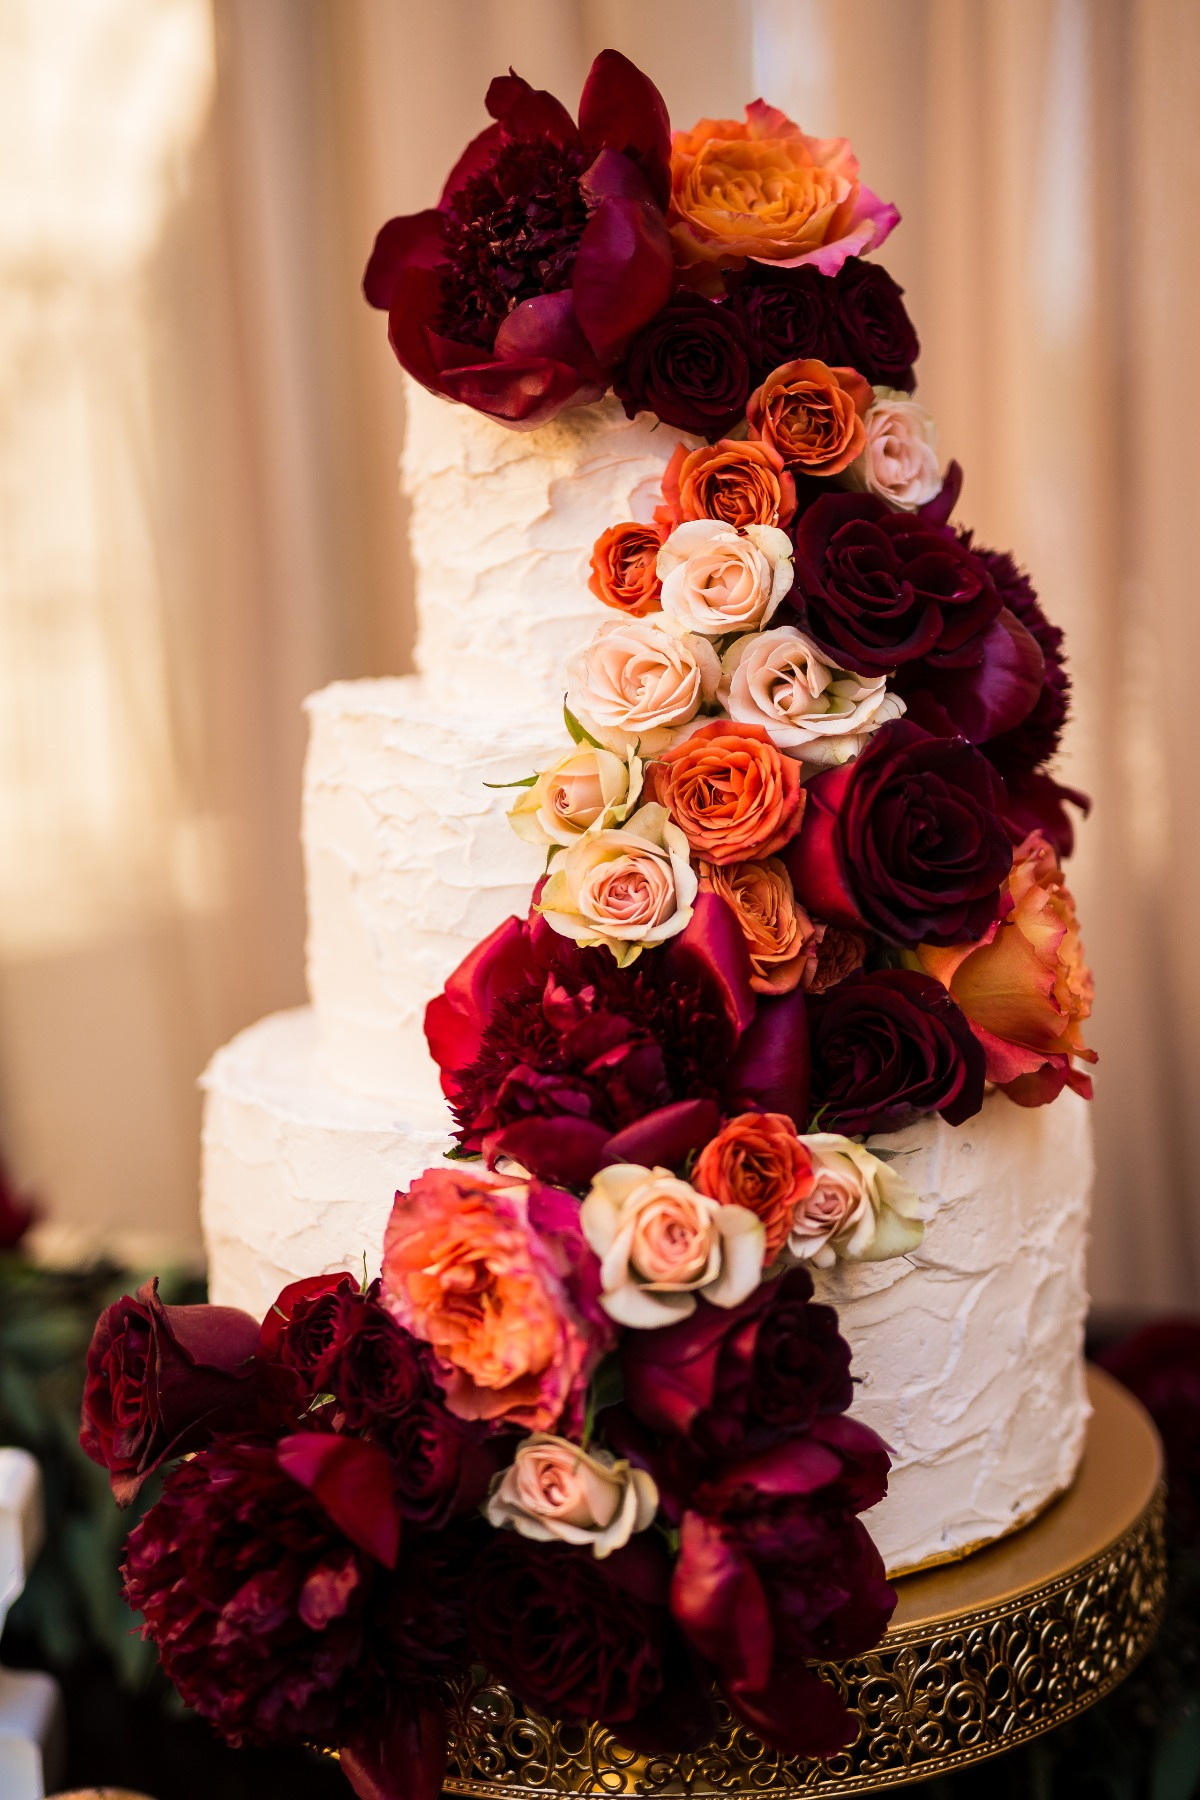 Wedding cake covered in roses